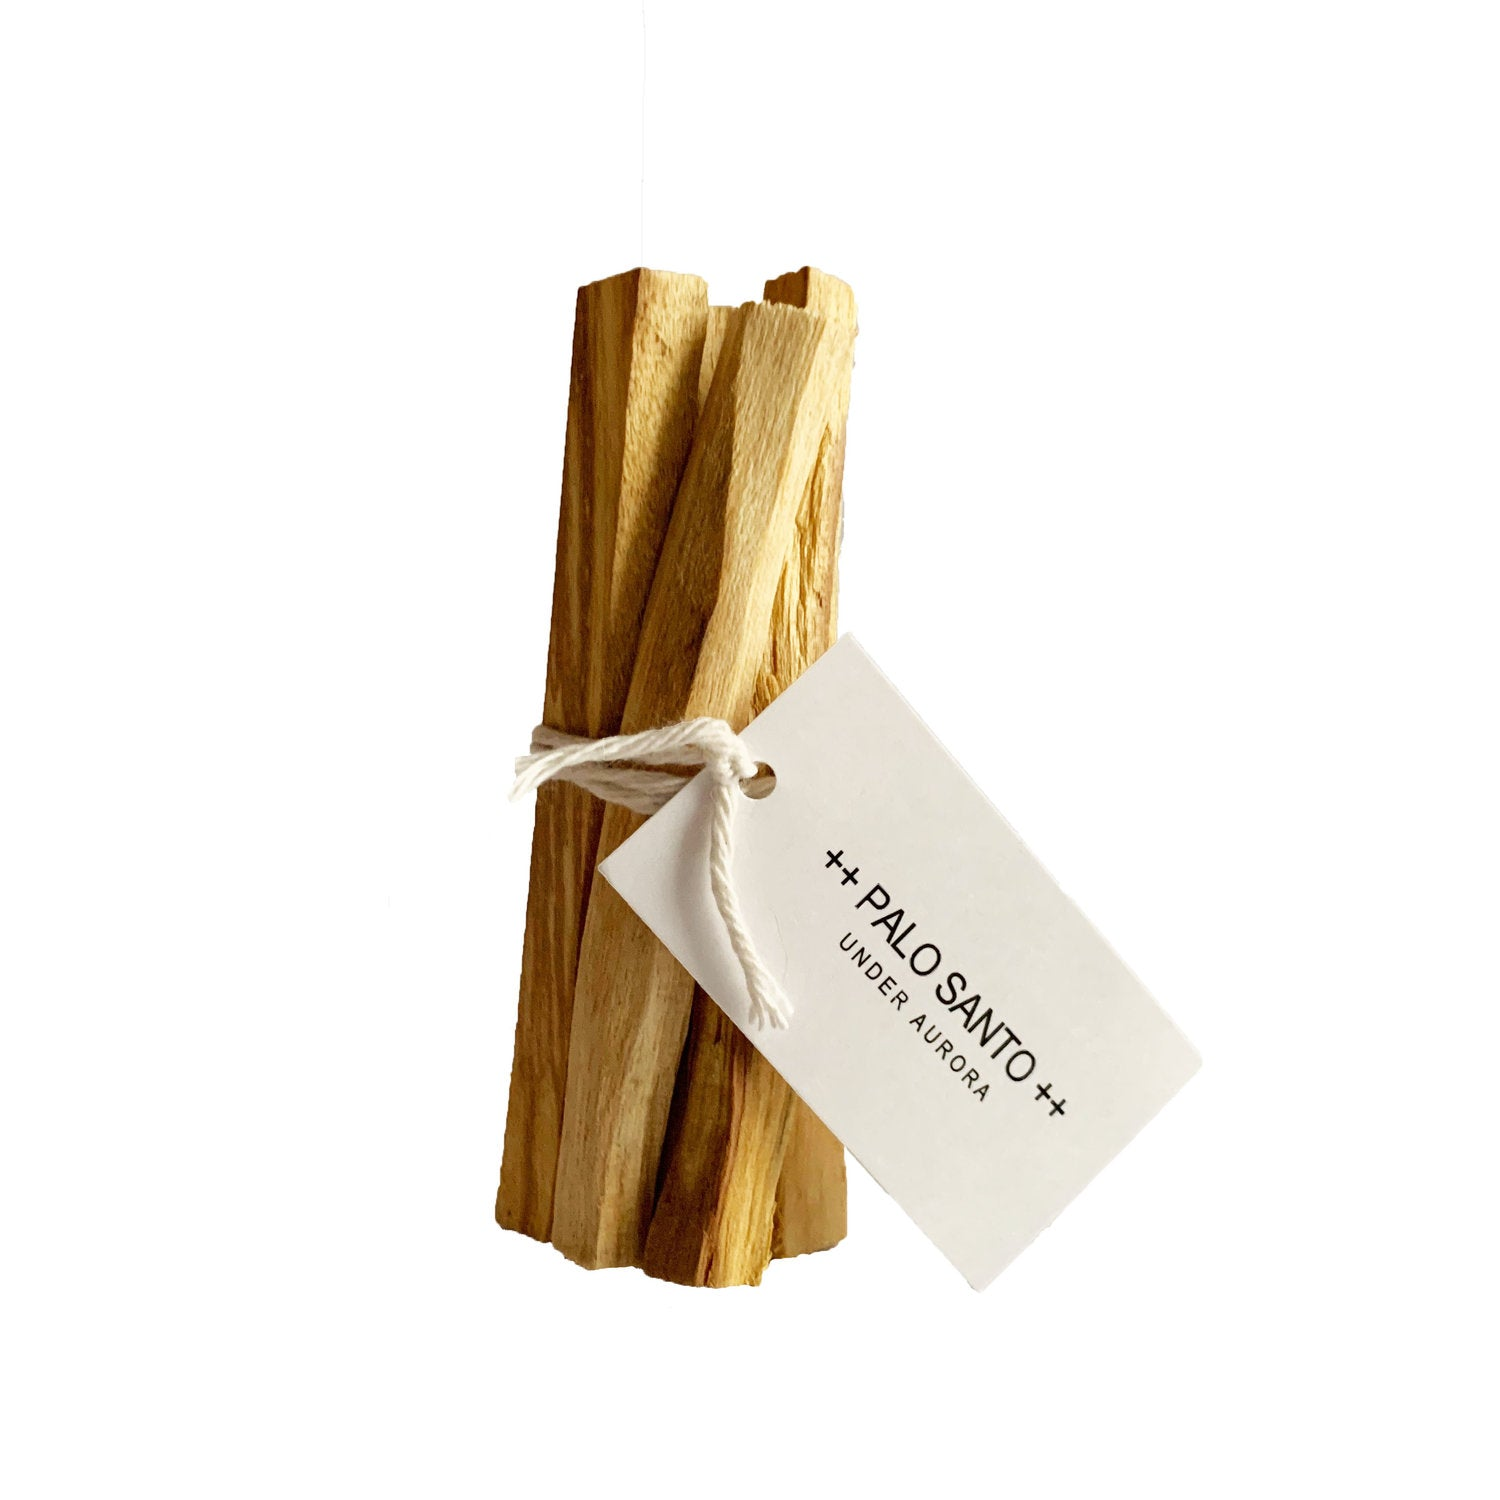 Under Aurora-Palo Santo in a little bundle